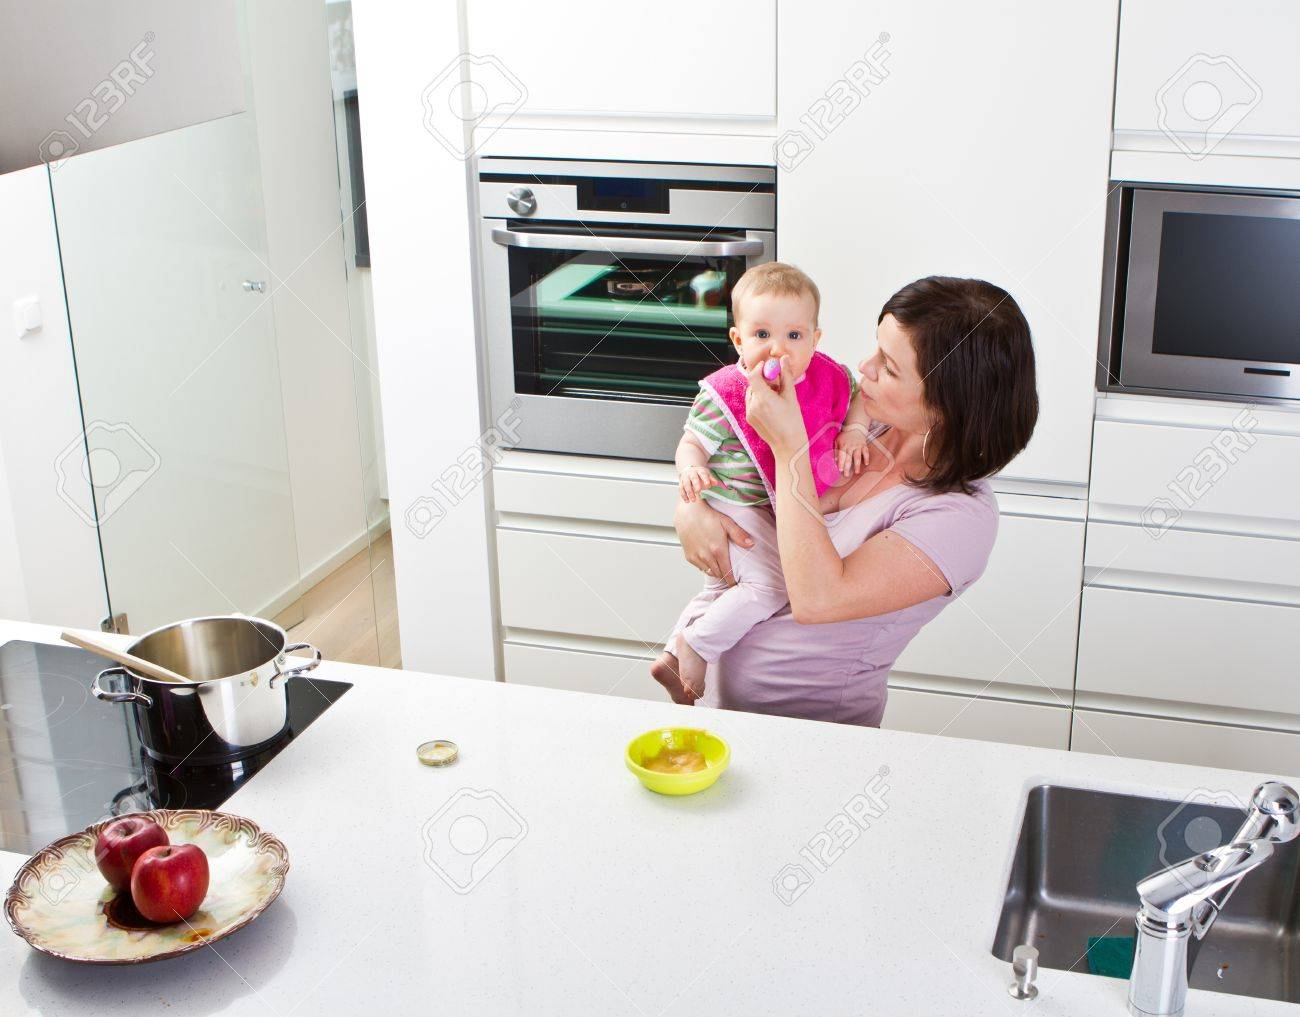 Kitchen Setting Young Mother Is Feeding Her Baby In A Modern Kitchen Setting